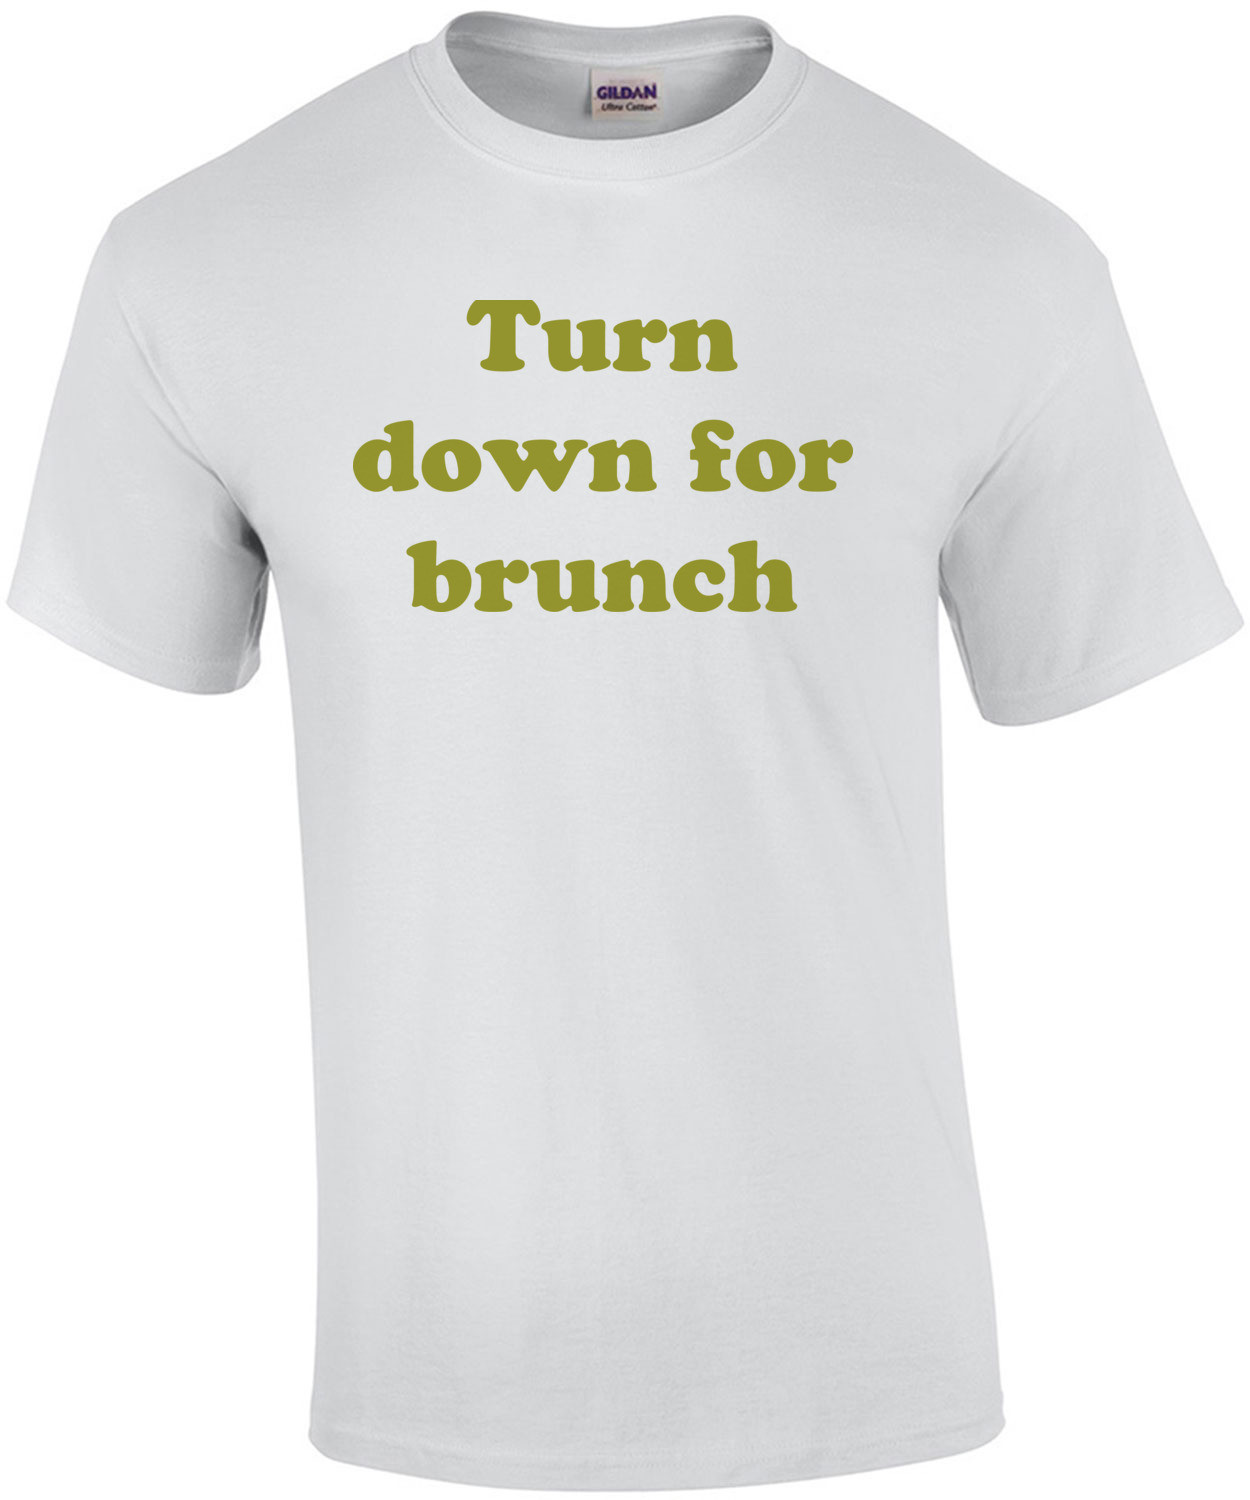 Turn down for brunch Funny Shirt